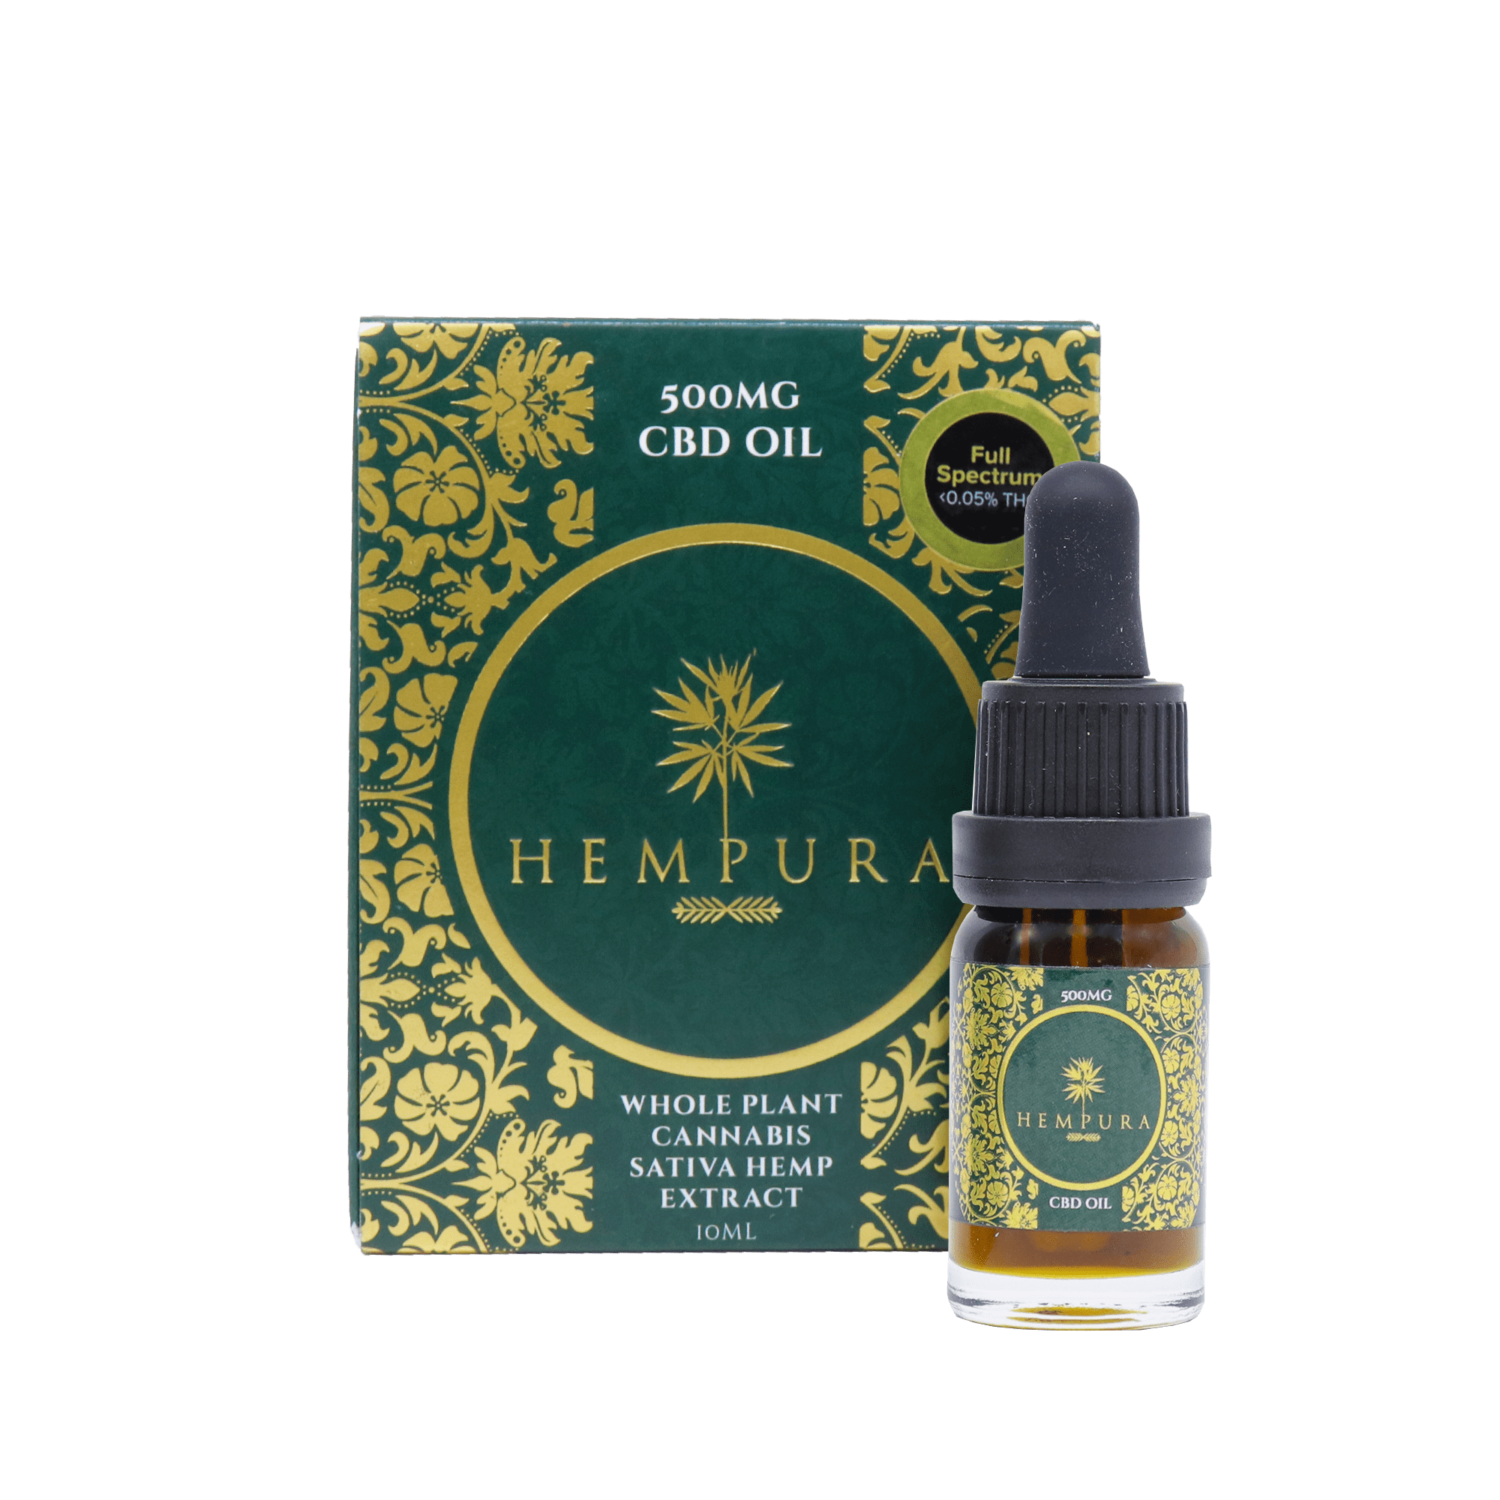 500MG CBD OIL Full Spec